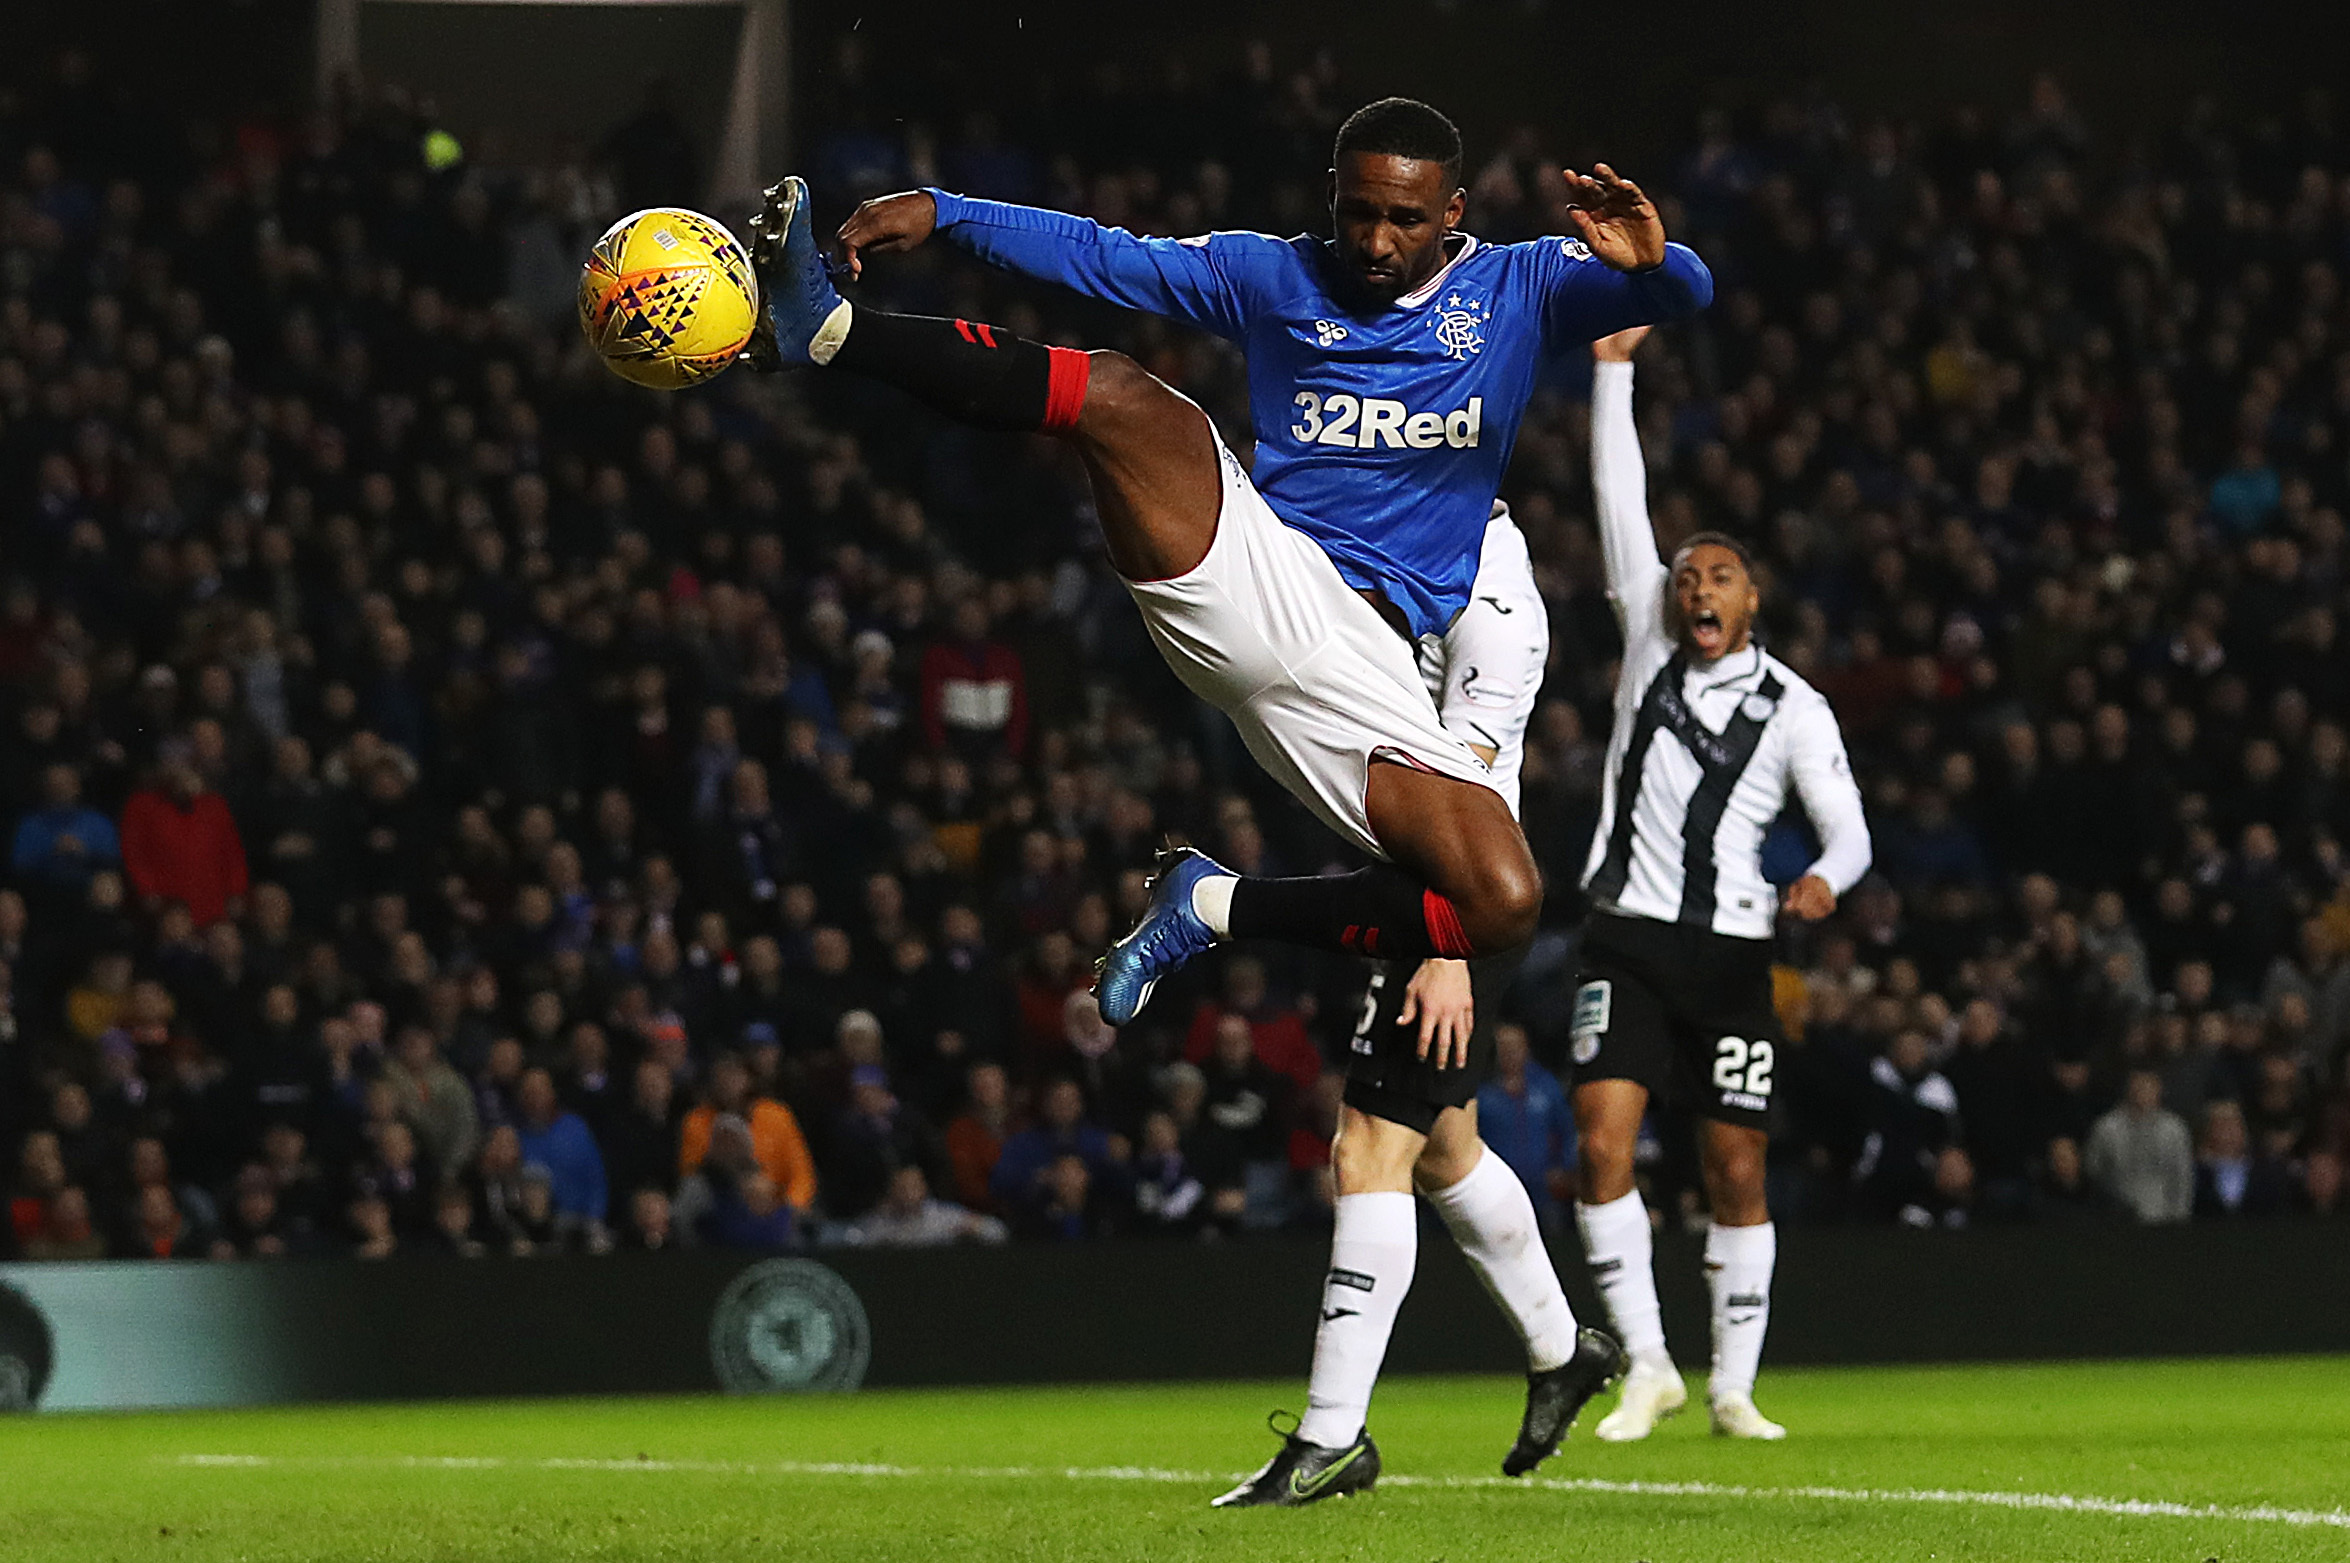 Rangers 1 St Mirren 0: How the Rangers players rated at Ibrox